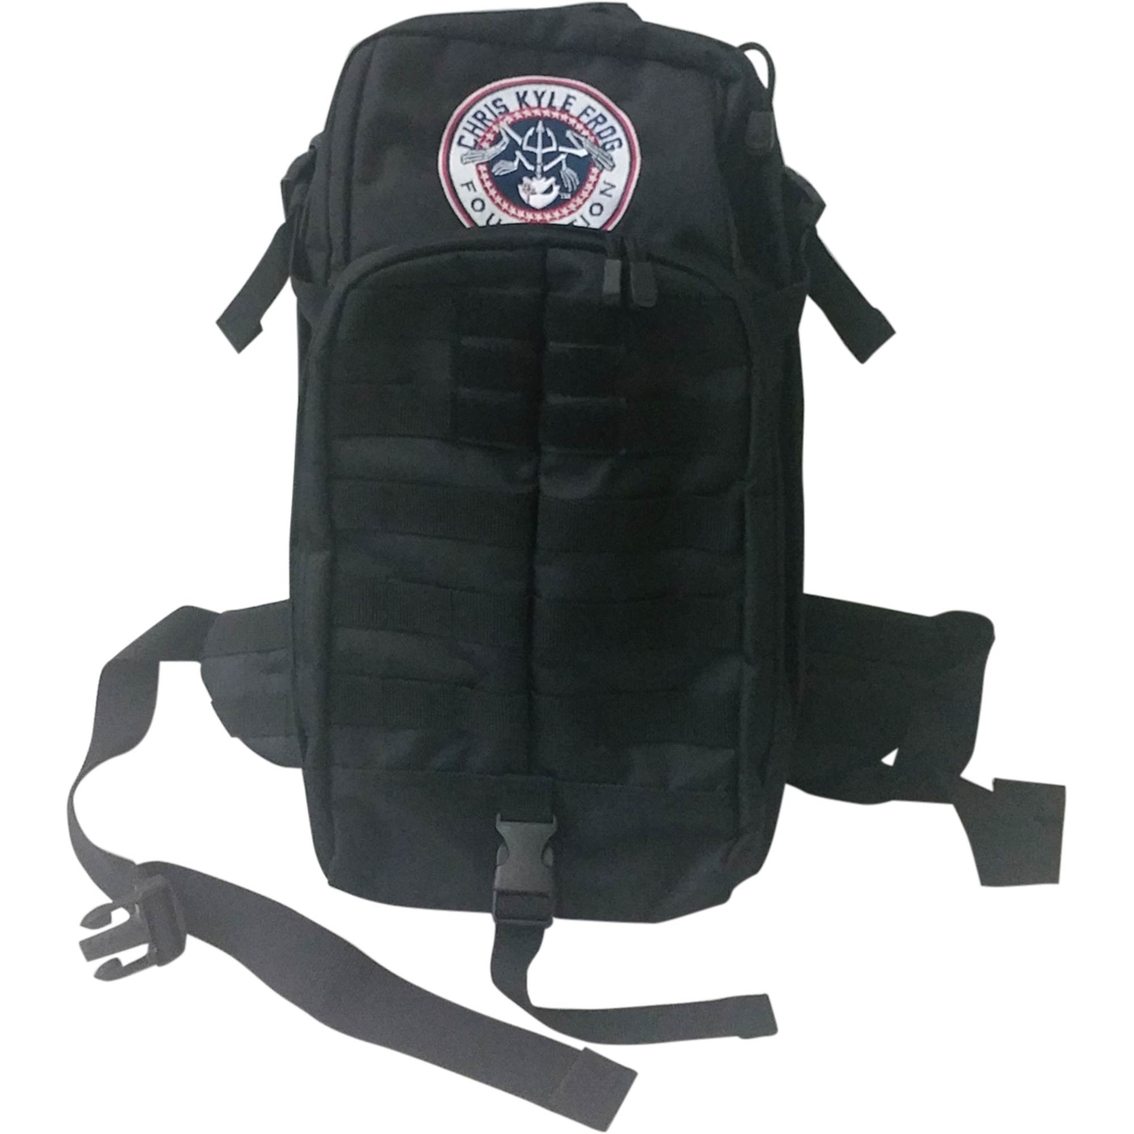 505331abe77a Chris Kyle Large Tactical Sling Backpack | Bags, Packs & Pouches ...